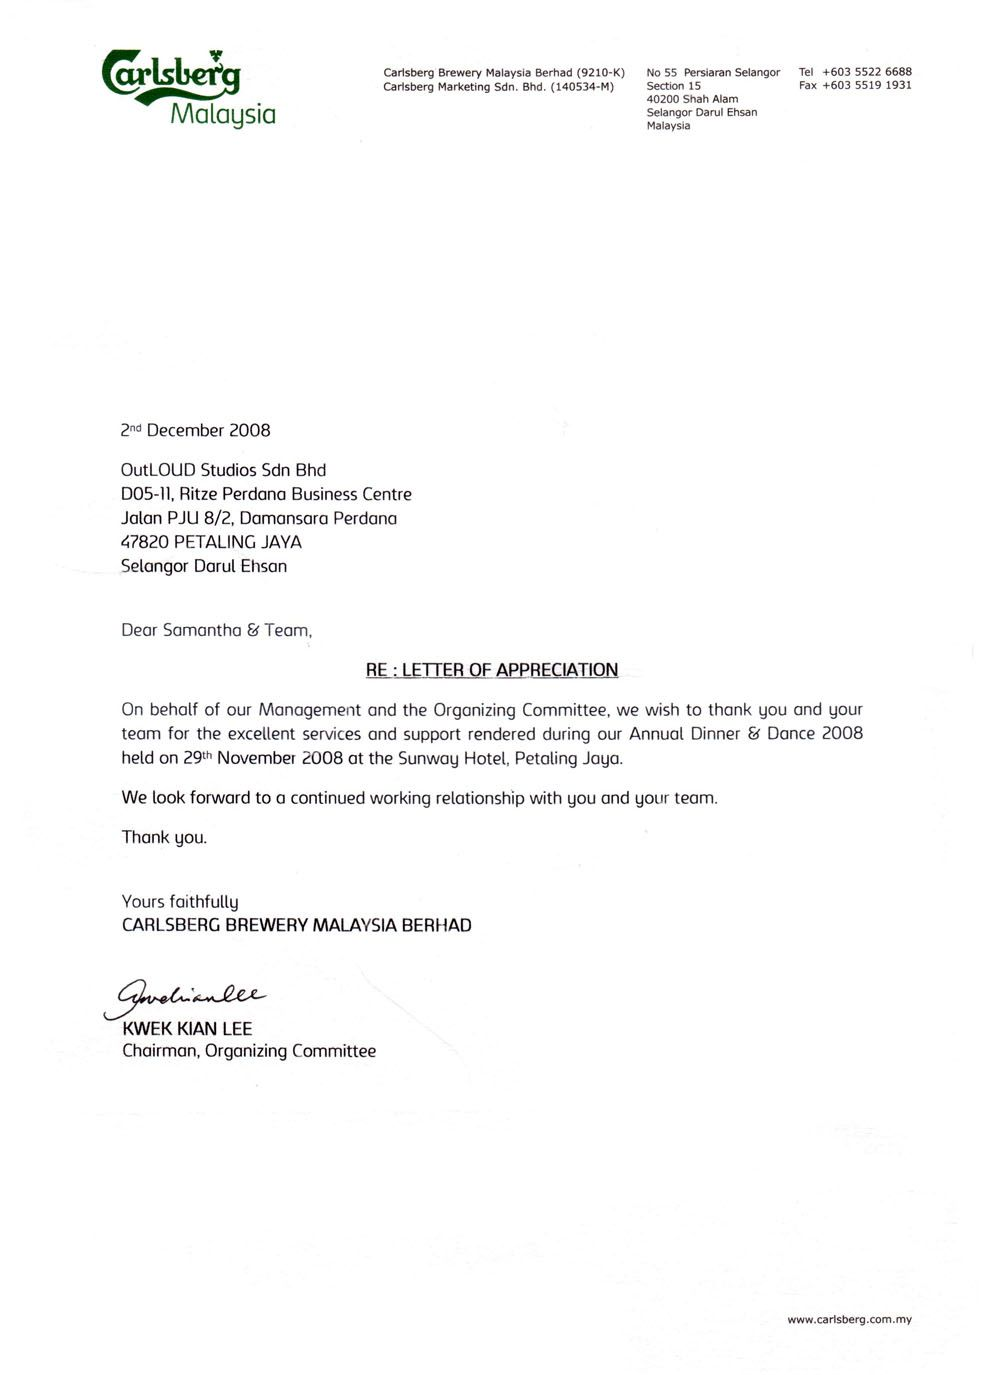 official letterhead document with employment confirmation